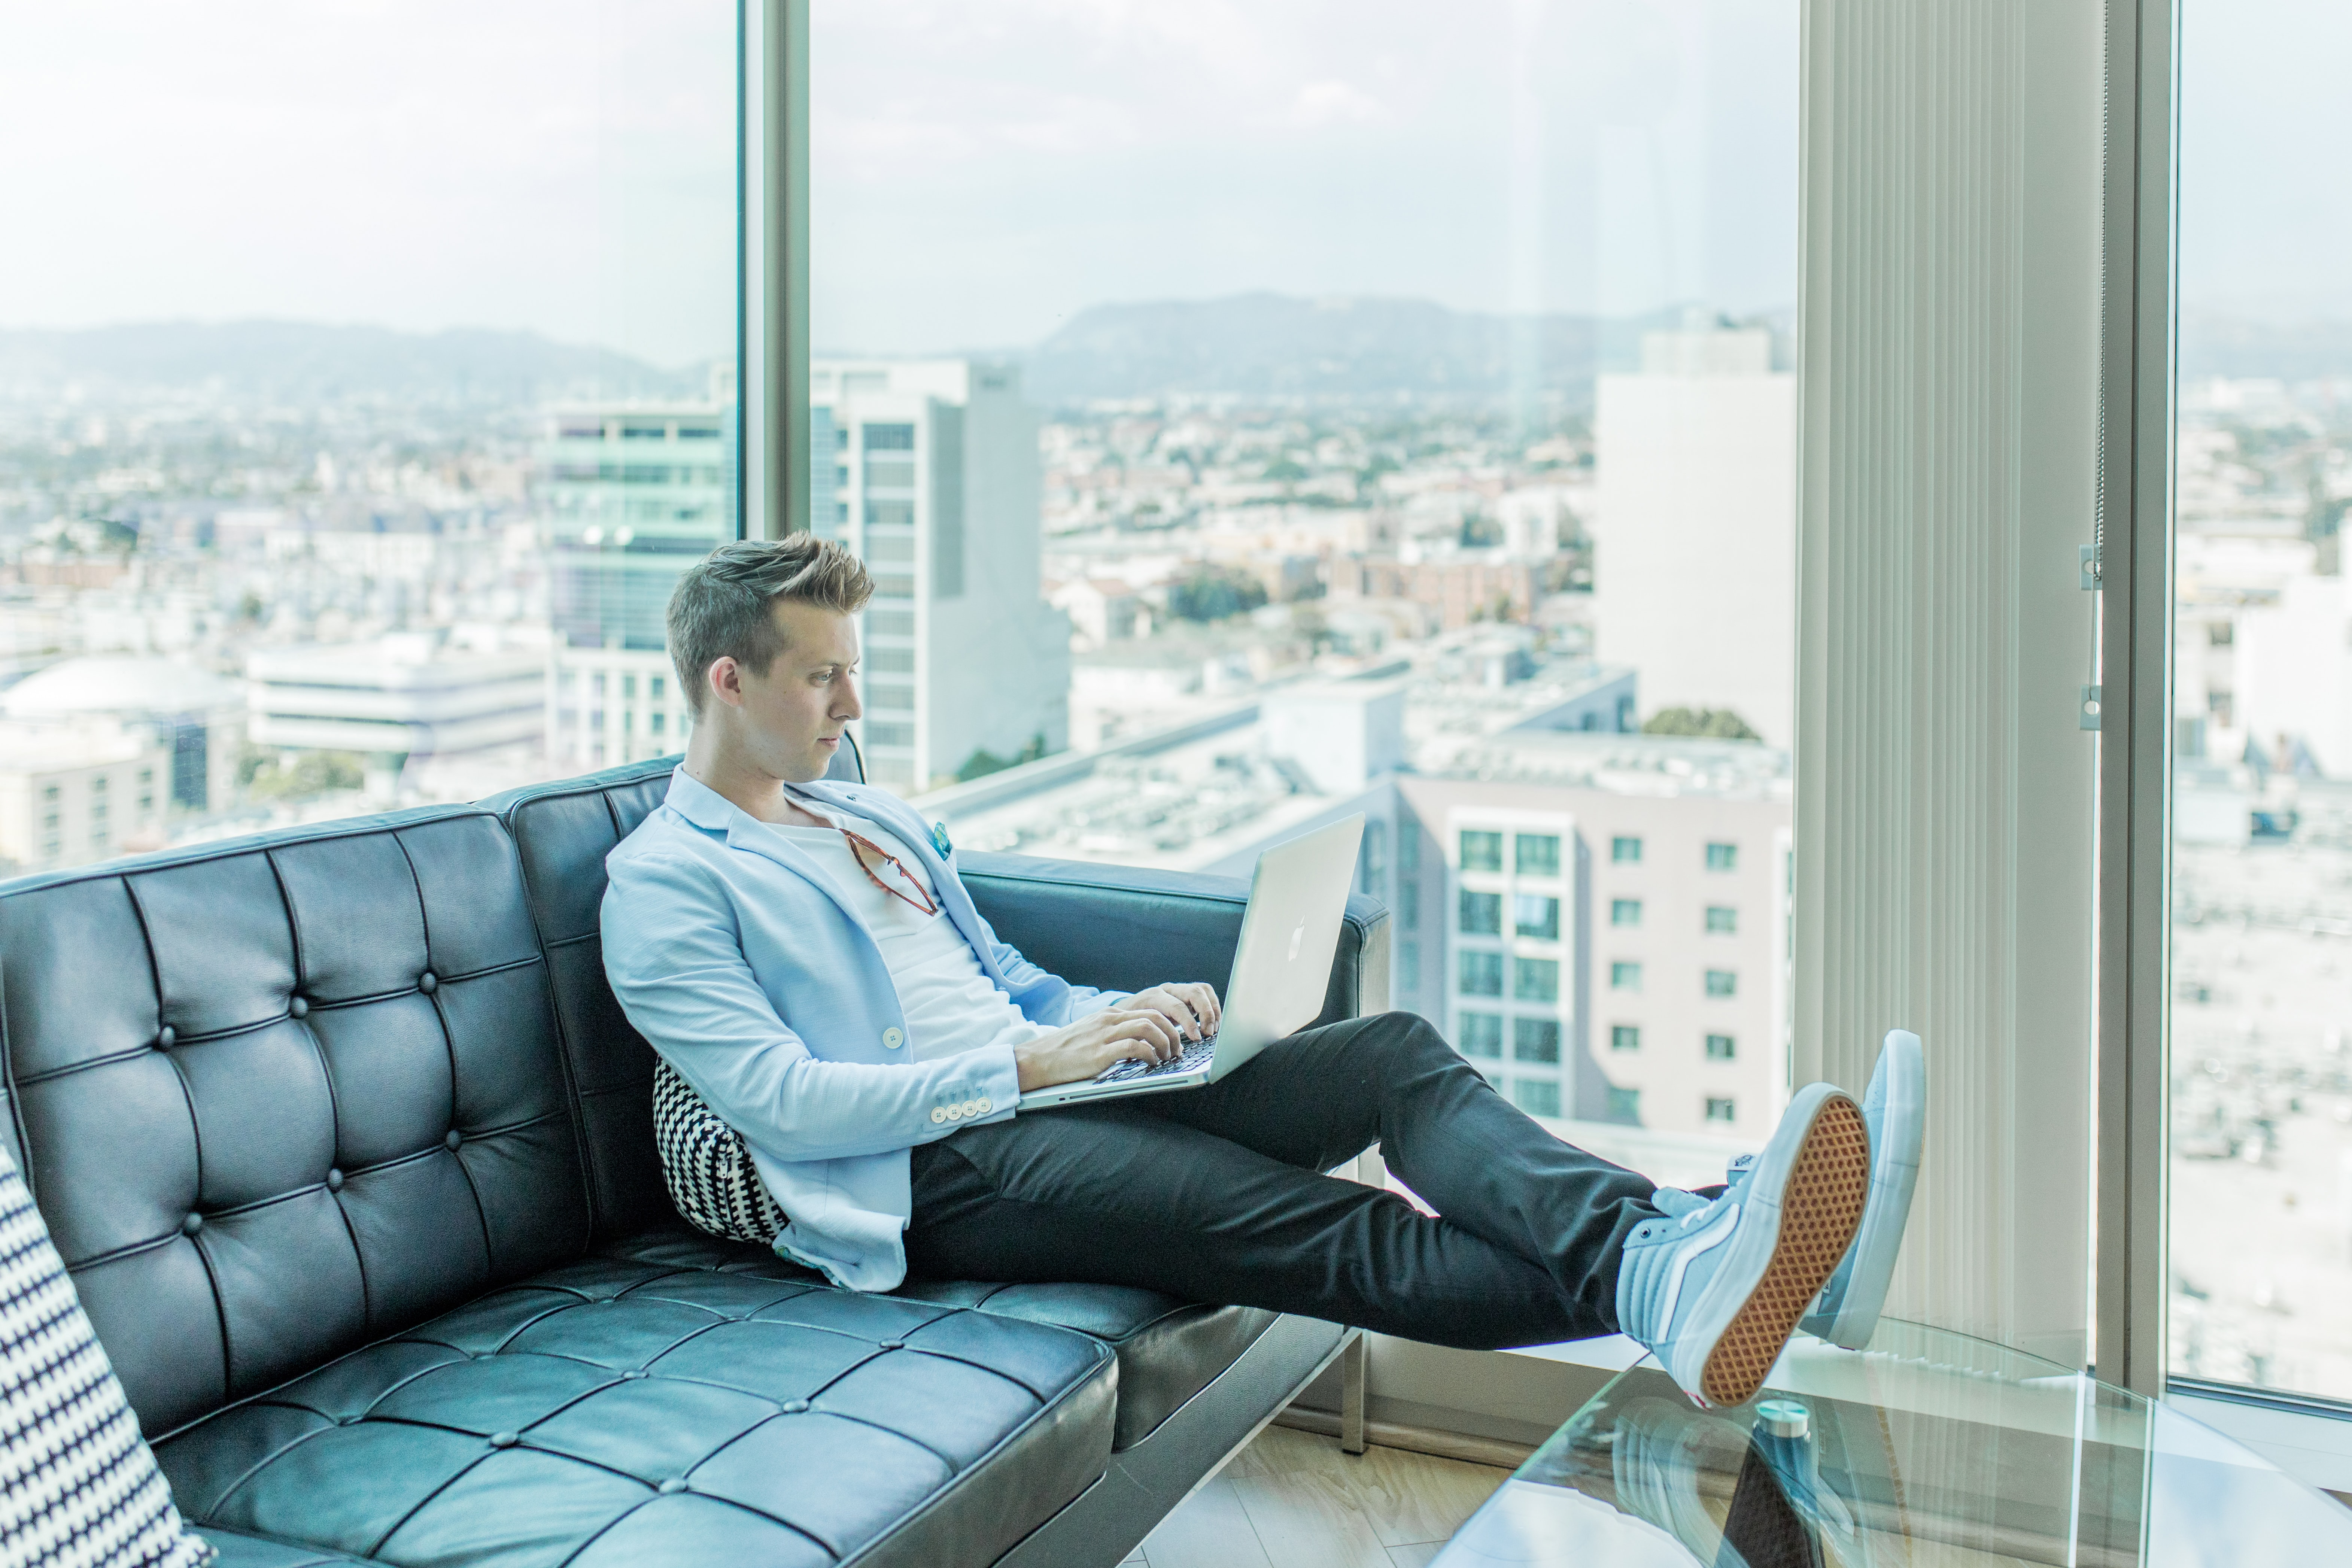 autonomy and authority is reflected in employees' freedom in utilizing new office spaces as they're intended